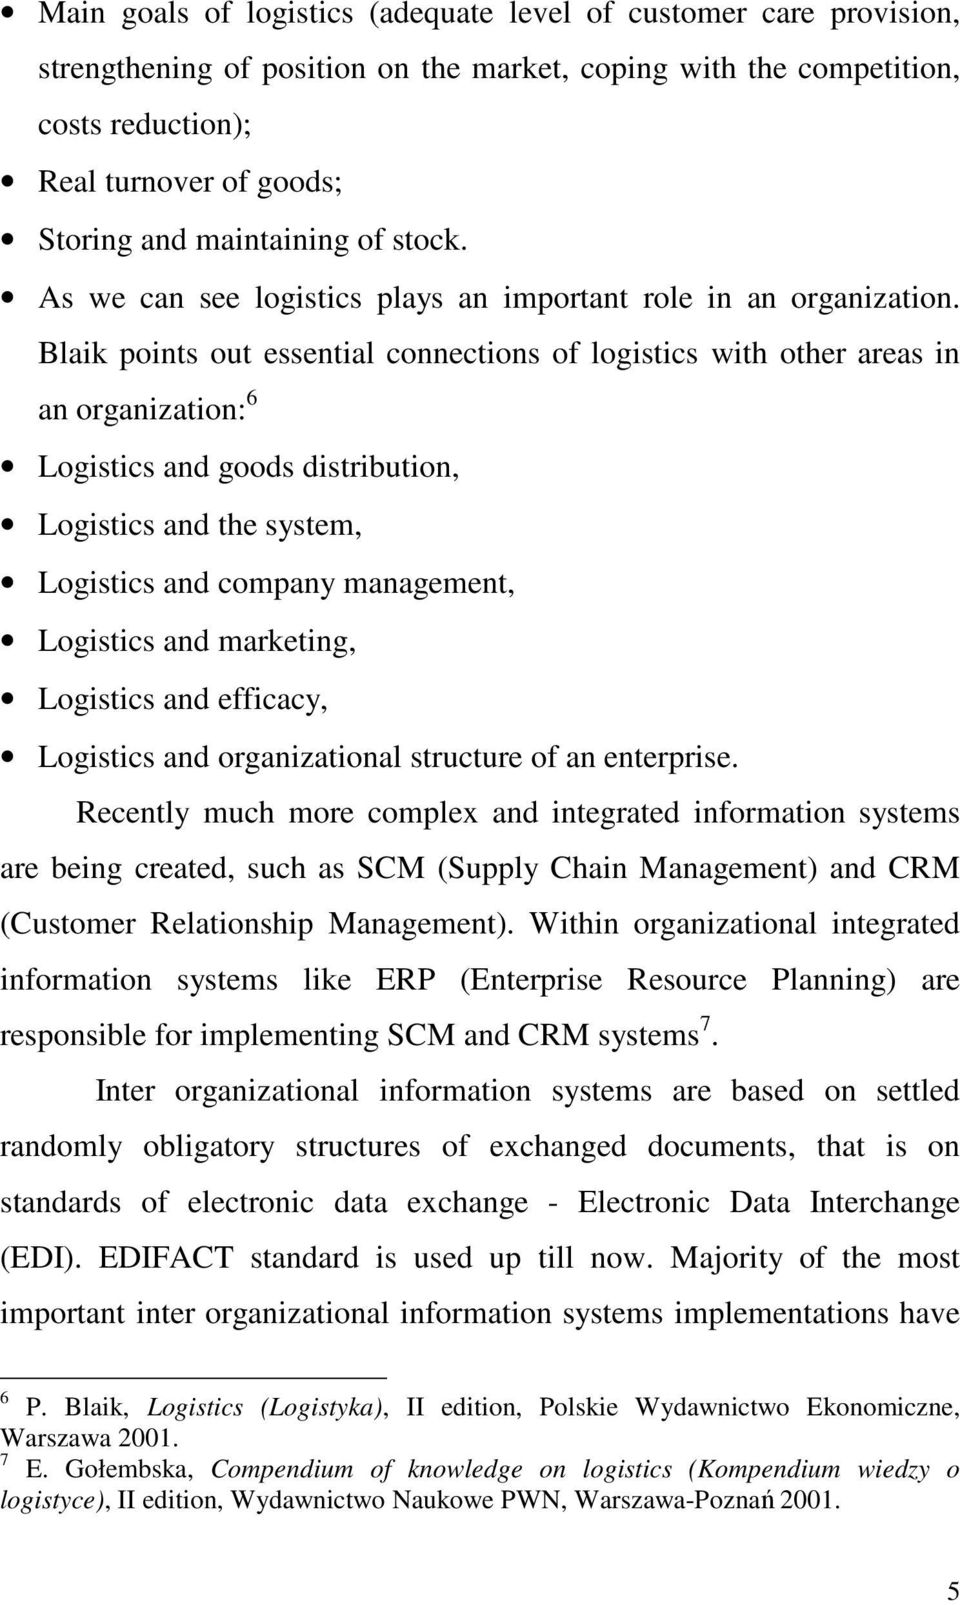 Blaik points out essential connections of logistics with other areas in an organization: 6 Logistics and goods distribution, Logistics and the system, Logistics and company management, Logistics and